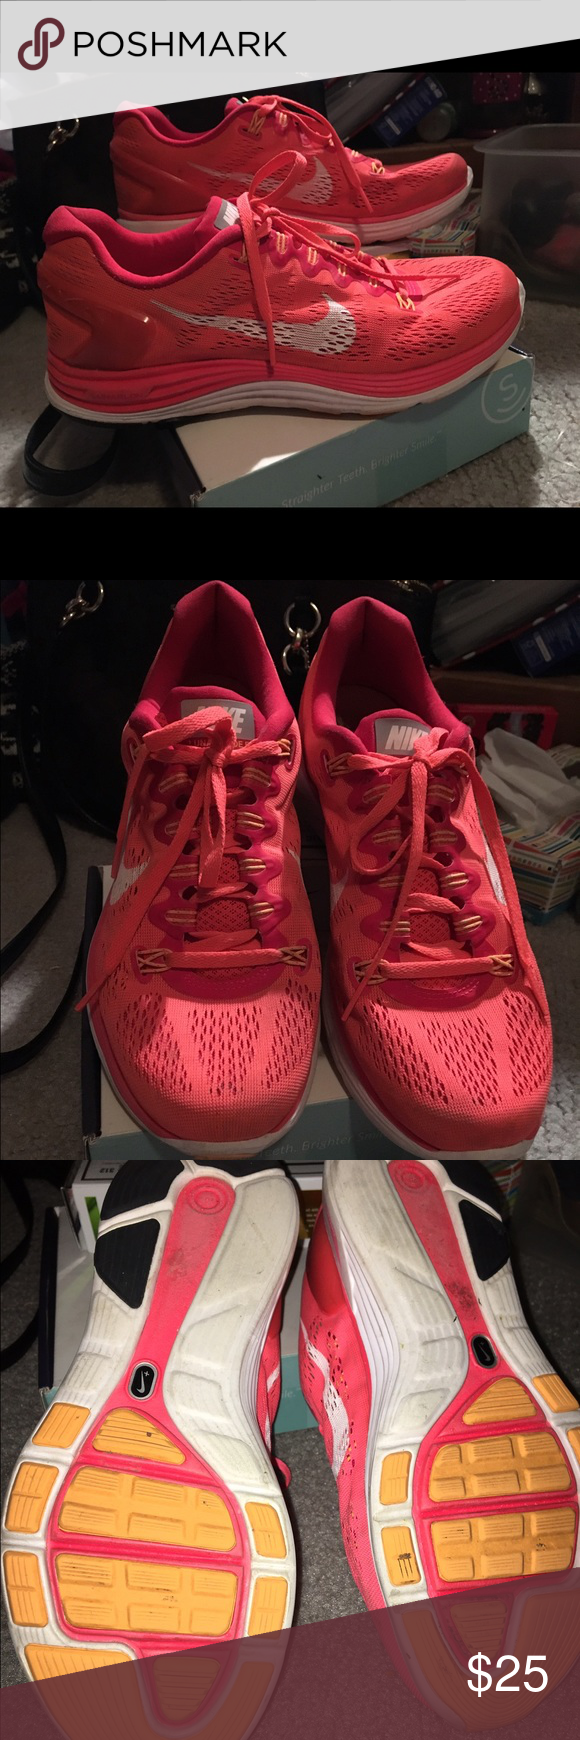 Nike Lunar running shoes Gently used, very little signs of wear. Super comfortable and fun color! Nike Shoes Athletic Shoes